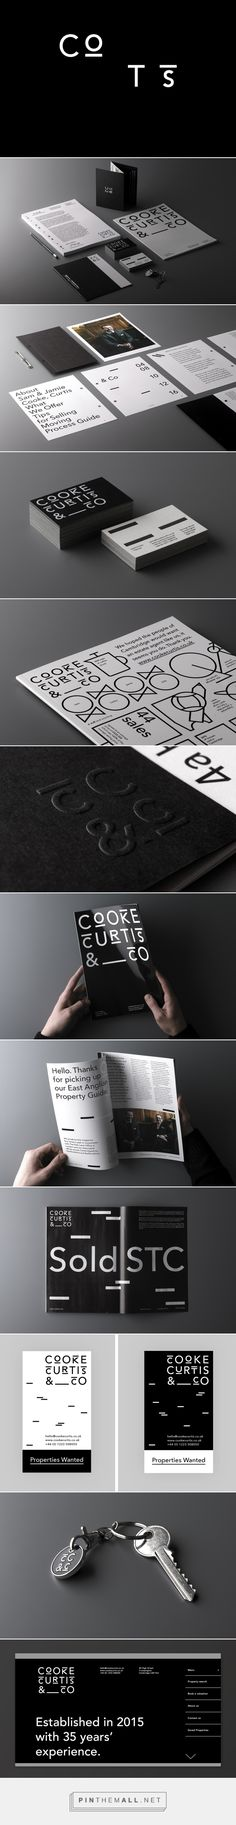 Brand Identity for Cooke Curtis & Co. by The District — BP&O - created via https://pinthemall.net